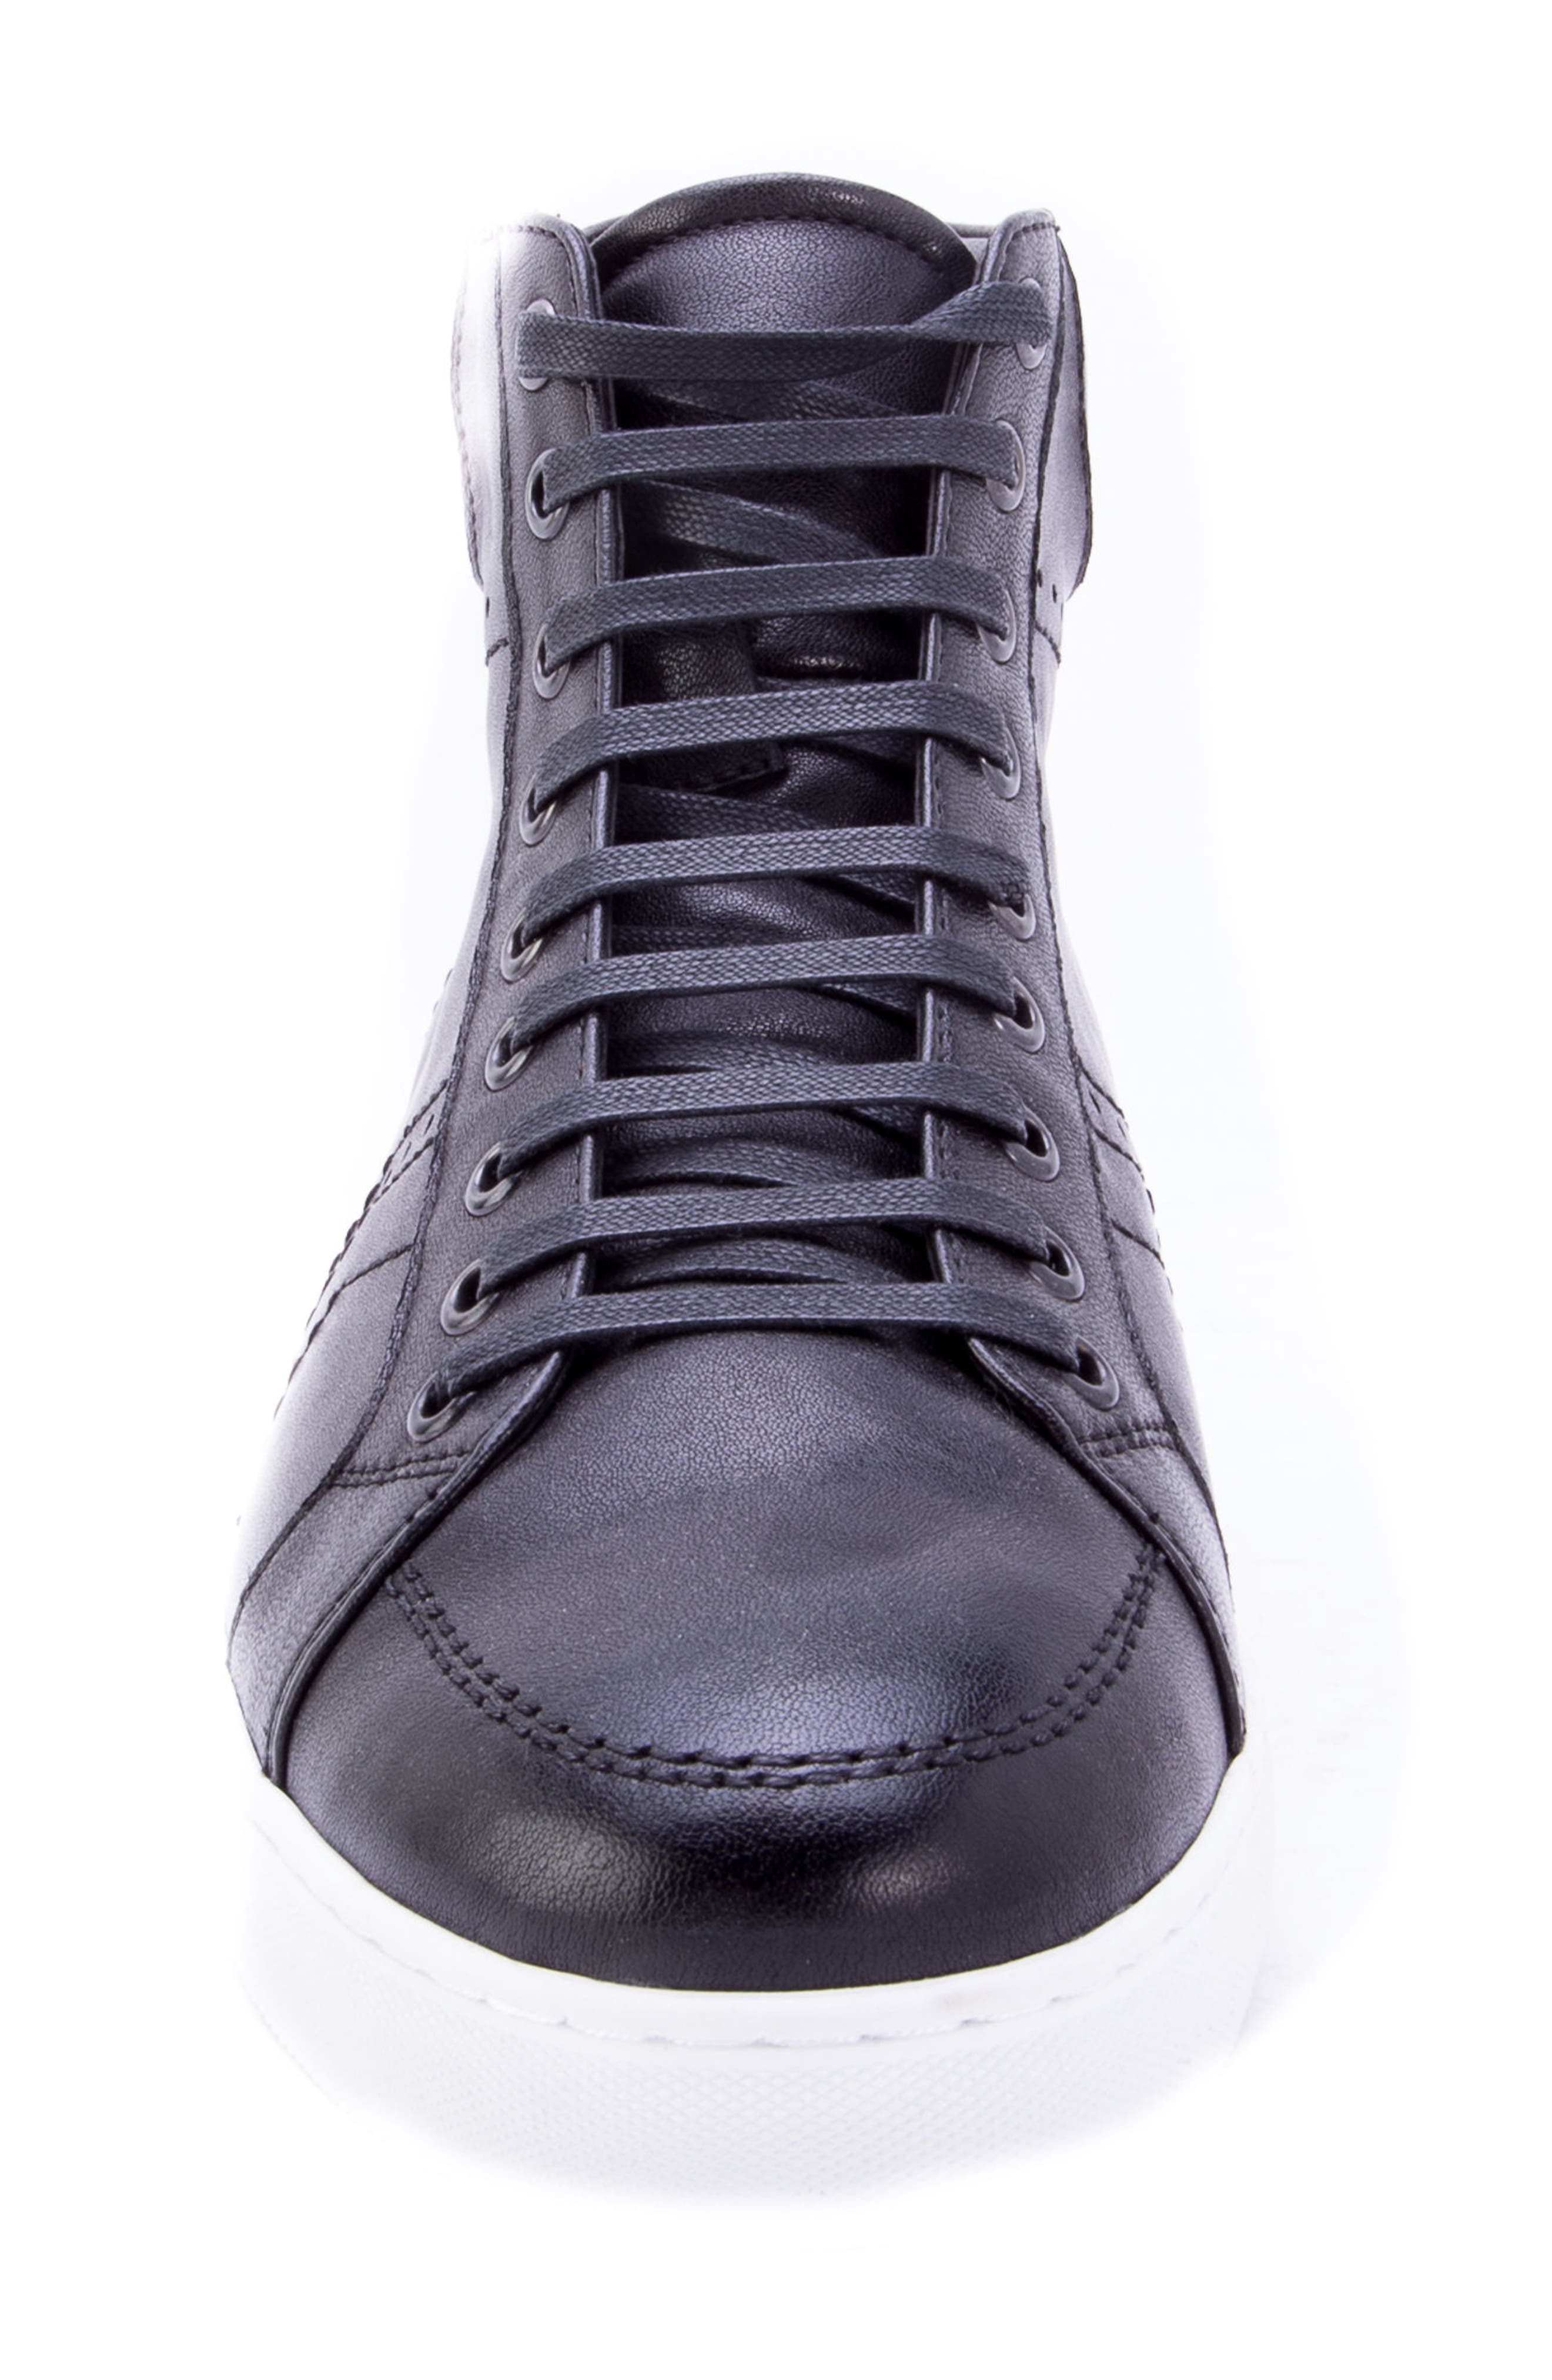 Uglow Perforated High Top Sneaker,                             Alternate thumbnail 4, color,                             BLACK LEATHER